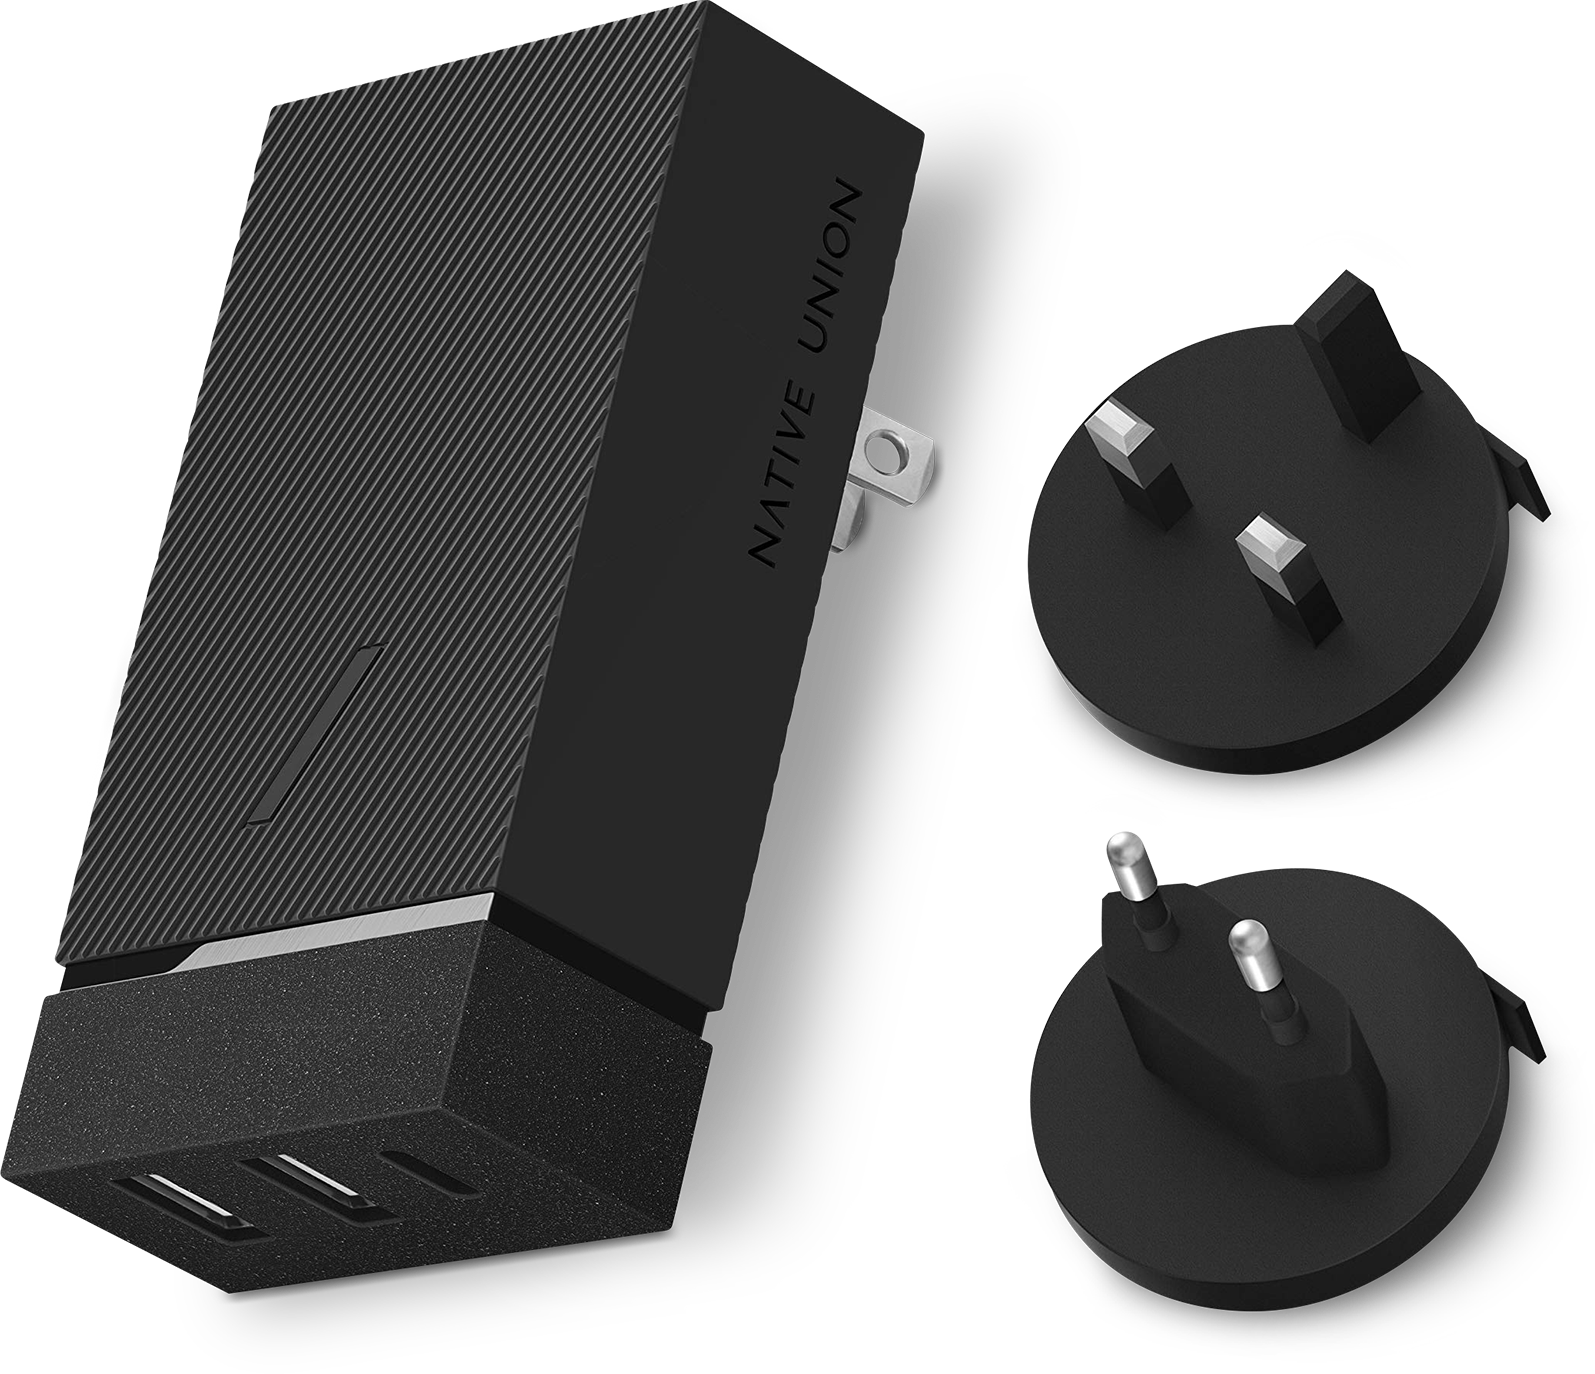 RE4rNy8?ver=535b - Native Union Smart Charger 45W (Slate)